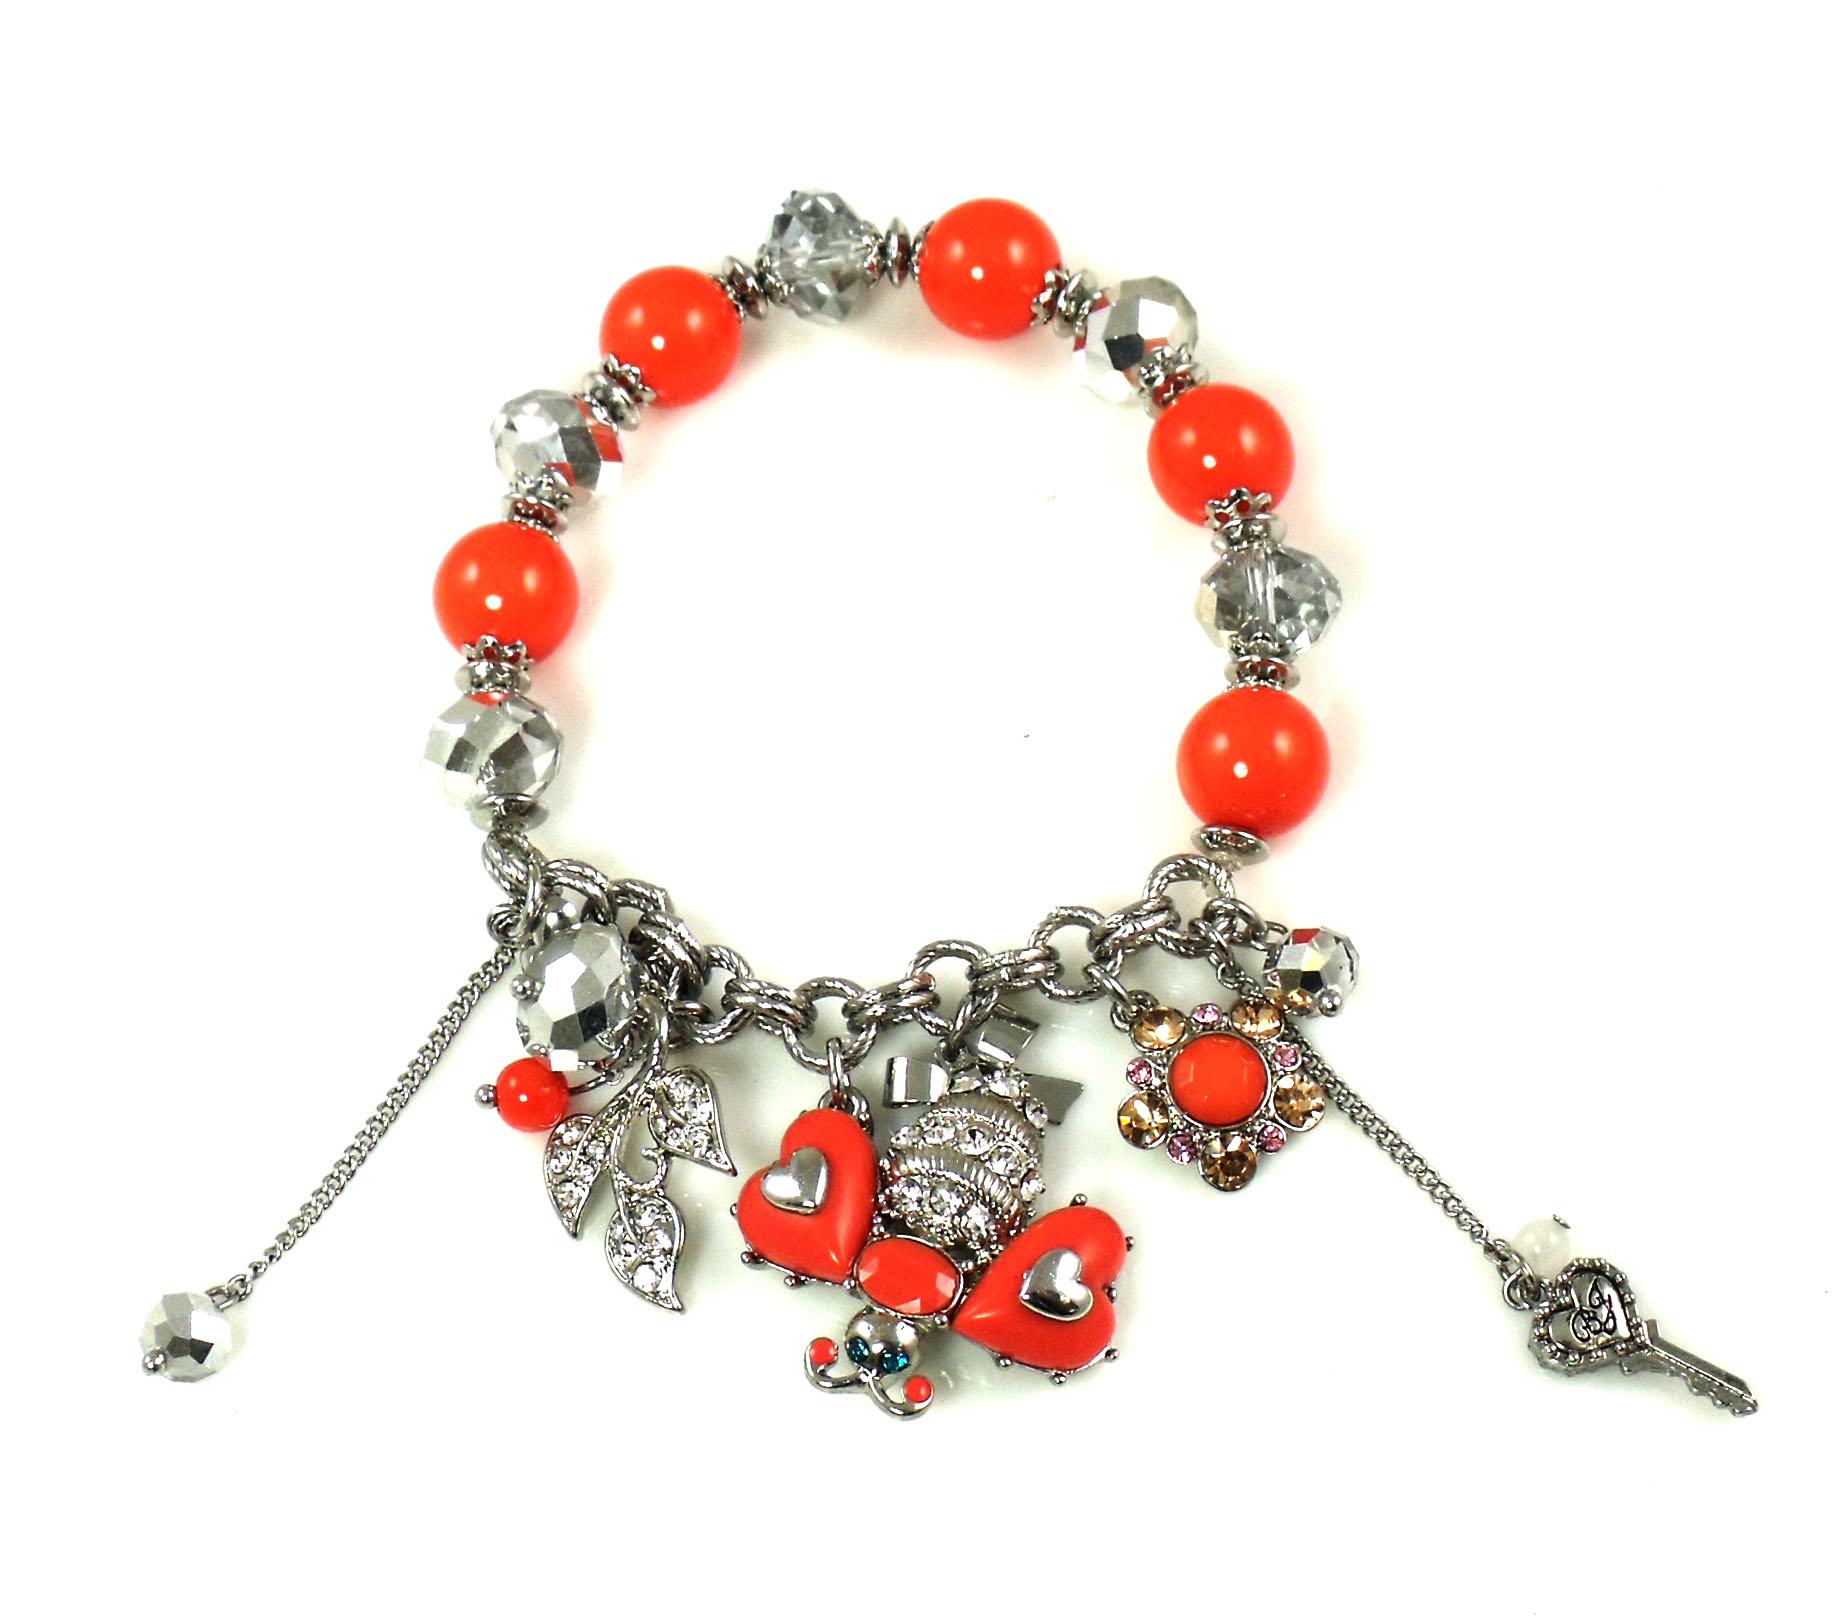 Betsey Johnson Jewelry Iconic Coral Glam Bee Bracelet New 2013